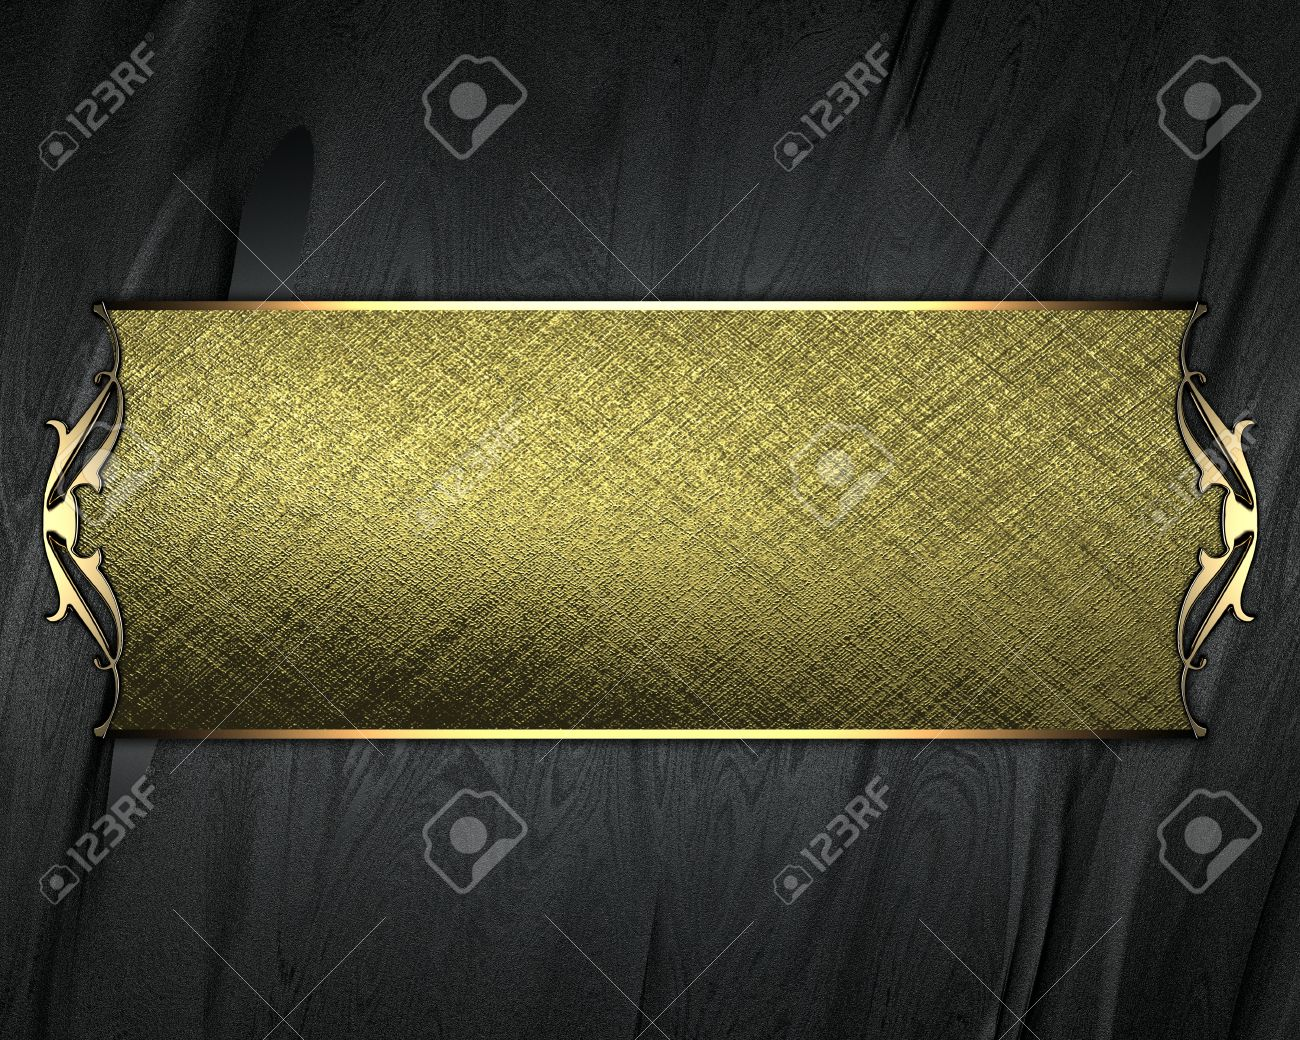 Design template - Black Background with gold plate and a beautiful gold trim Stock Photo - 16685849